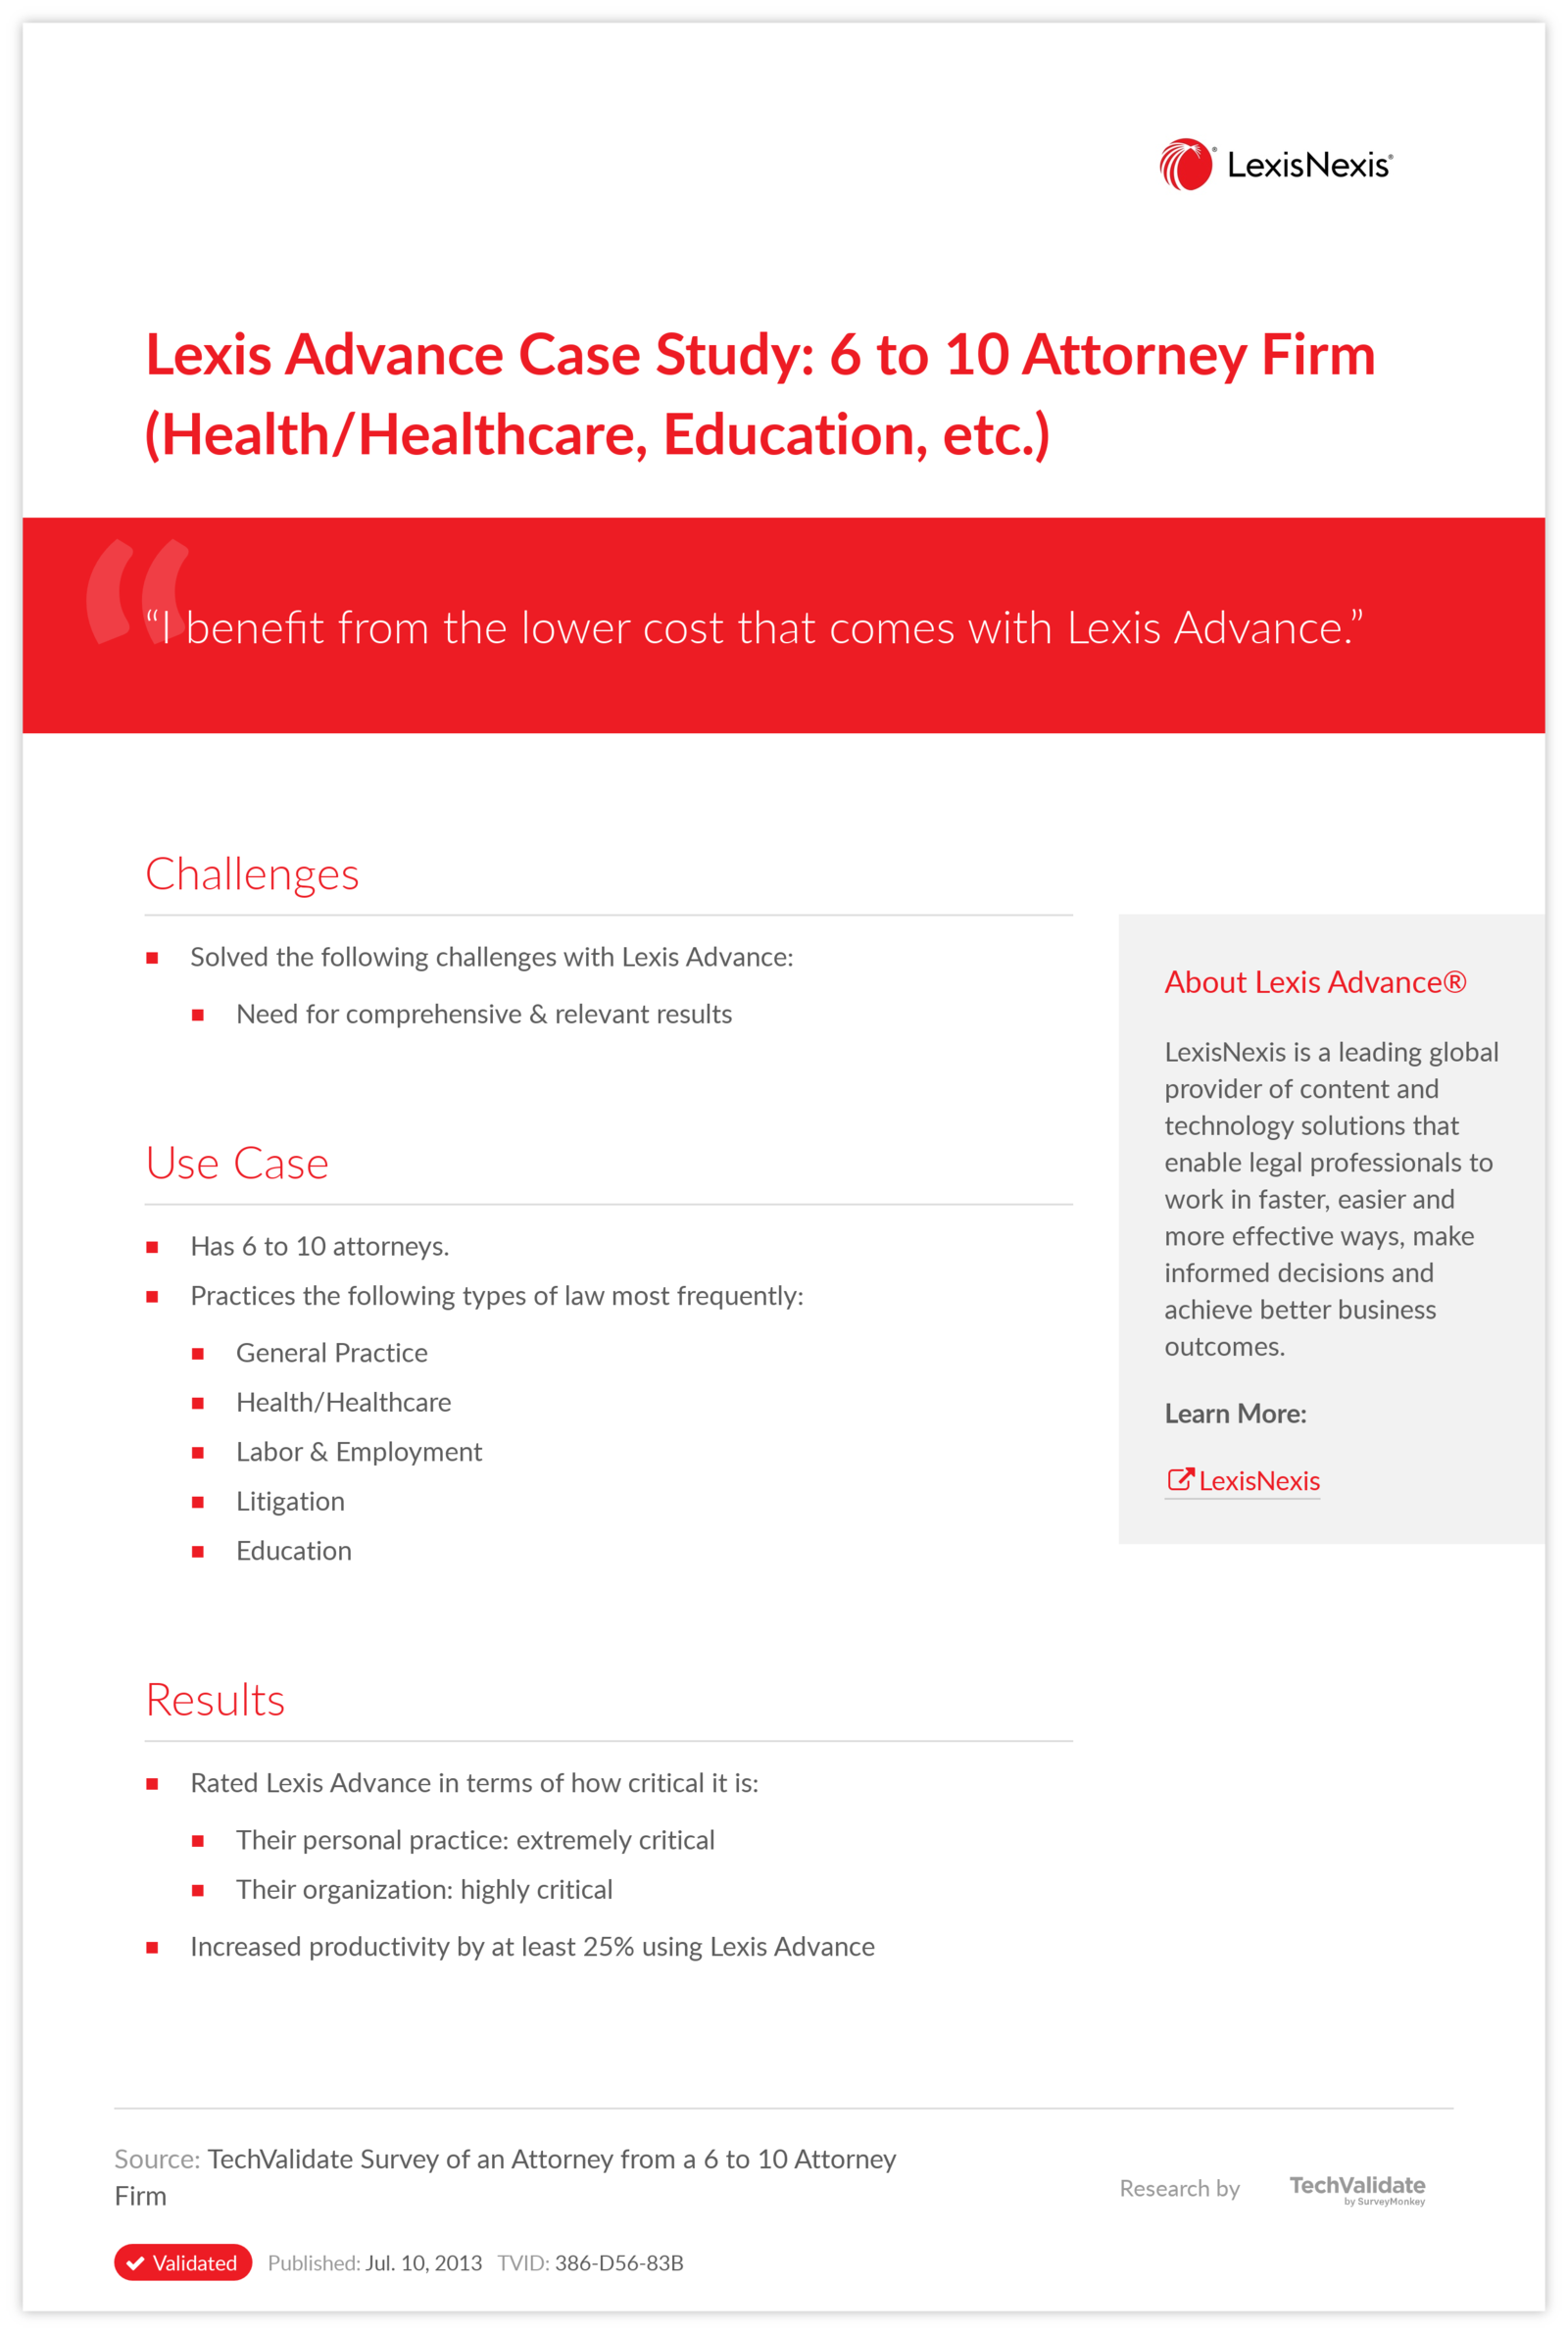 Lexis Advance Case Study: 6 to 10 Attorney Firm (Health/Healthcare, Education, etc.)